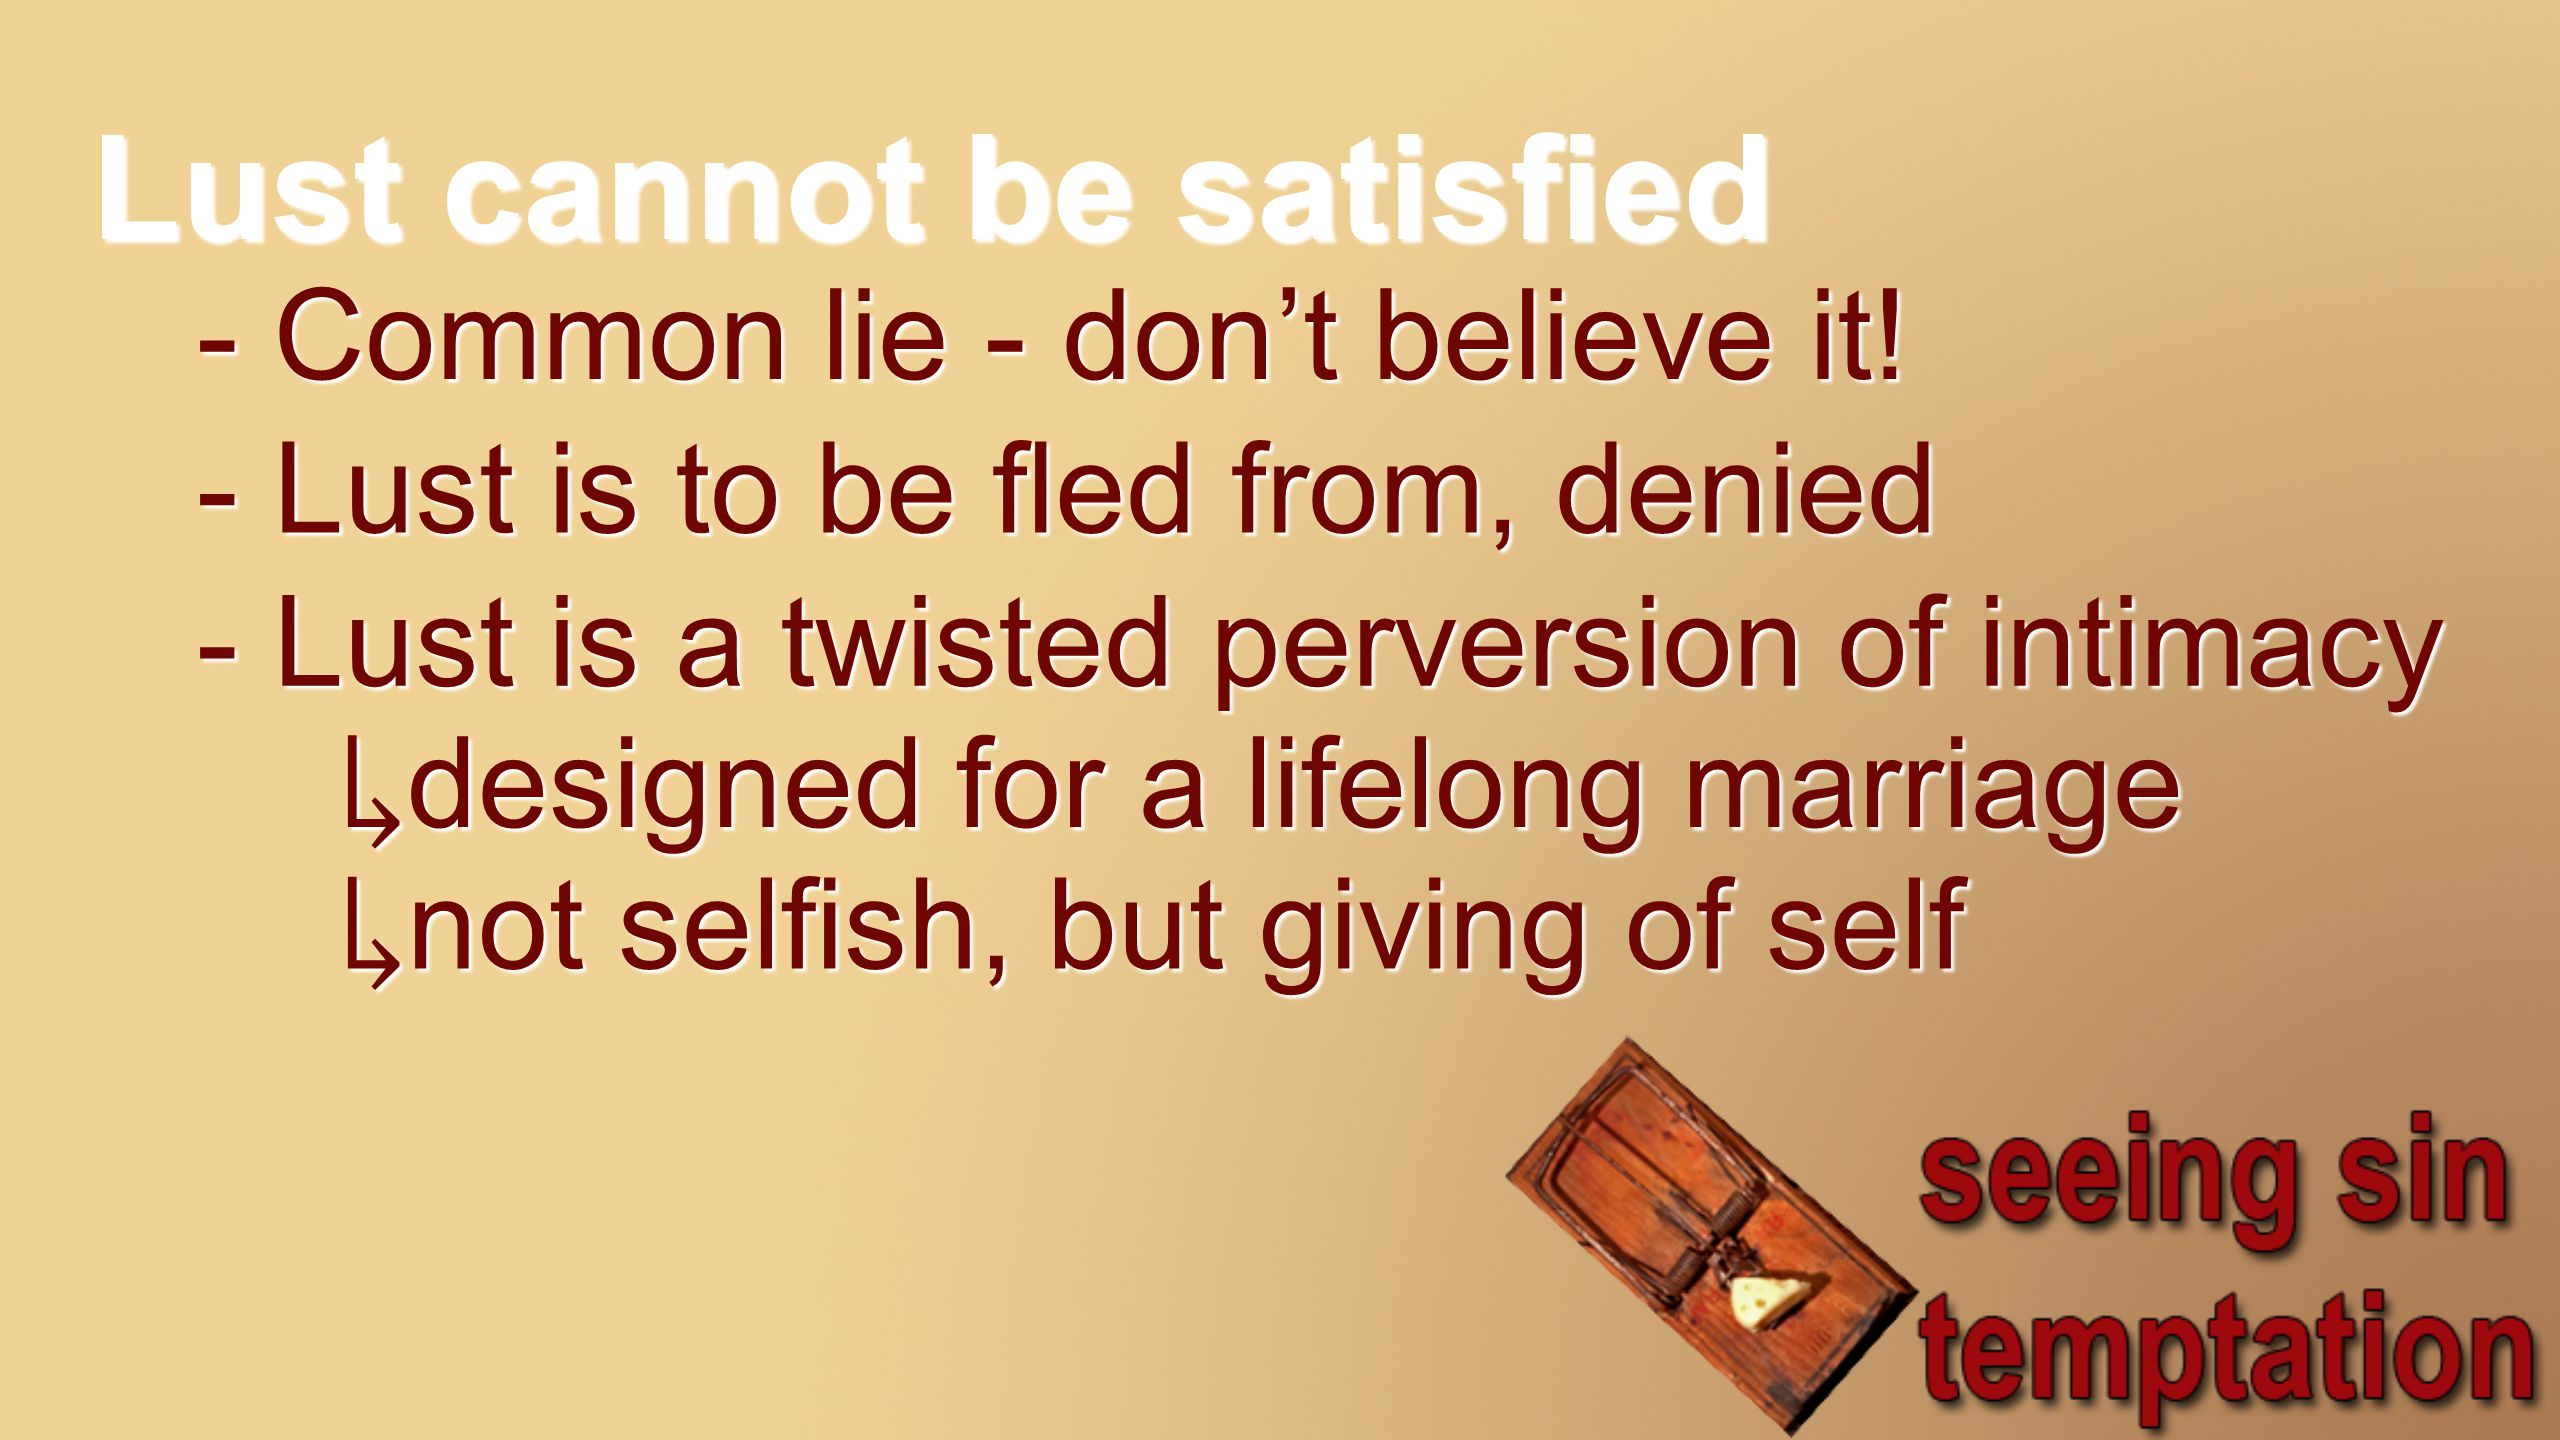 Lust cannot be satisfied - Common lie - don't believe it.